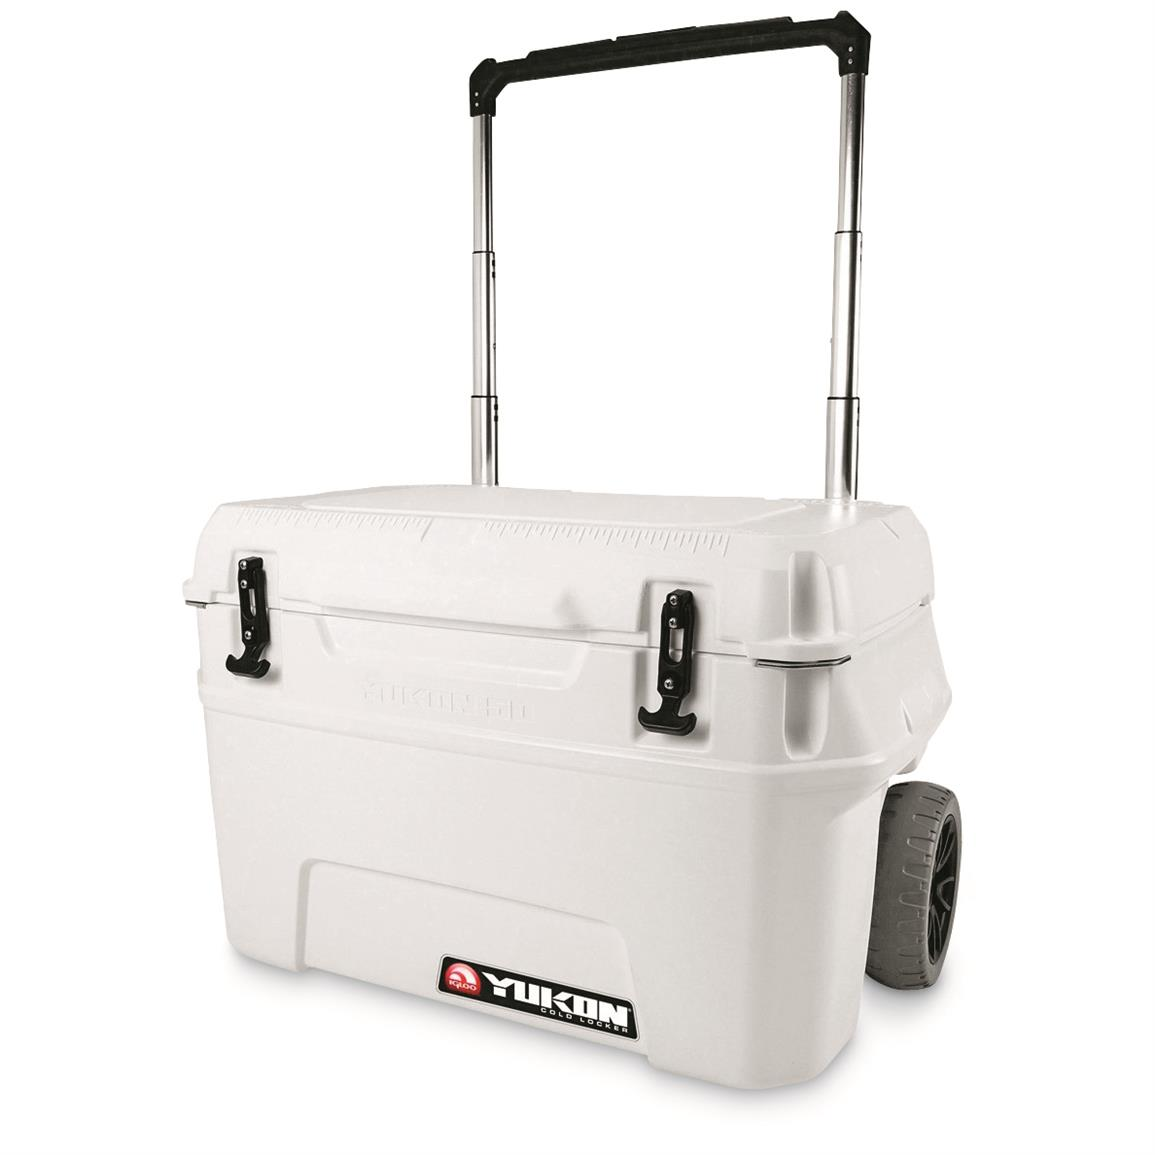 Igloo Yukon 50-qt. Roller Cooler, White